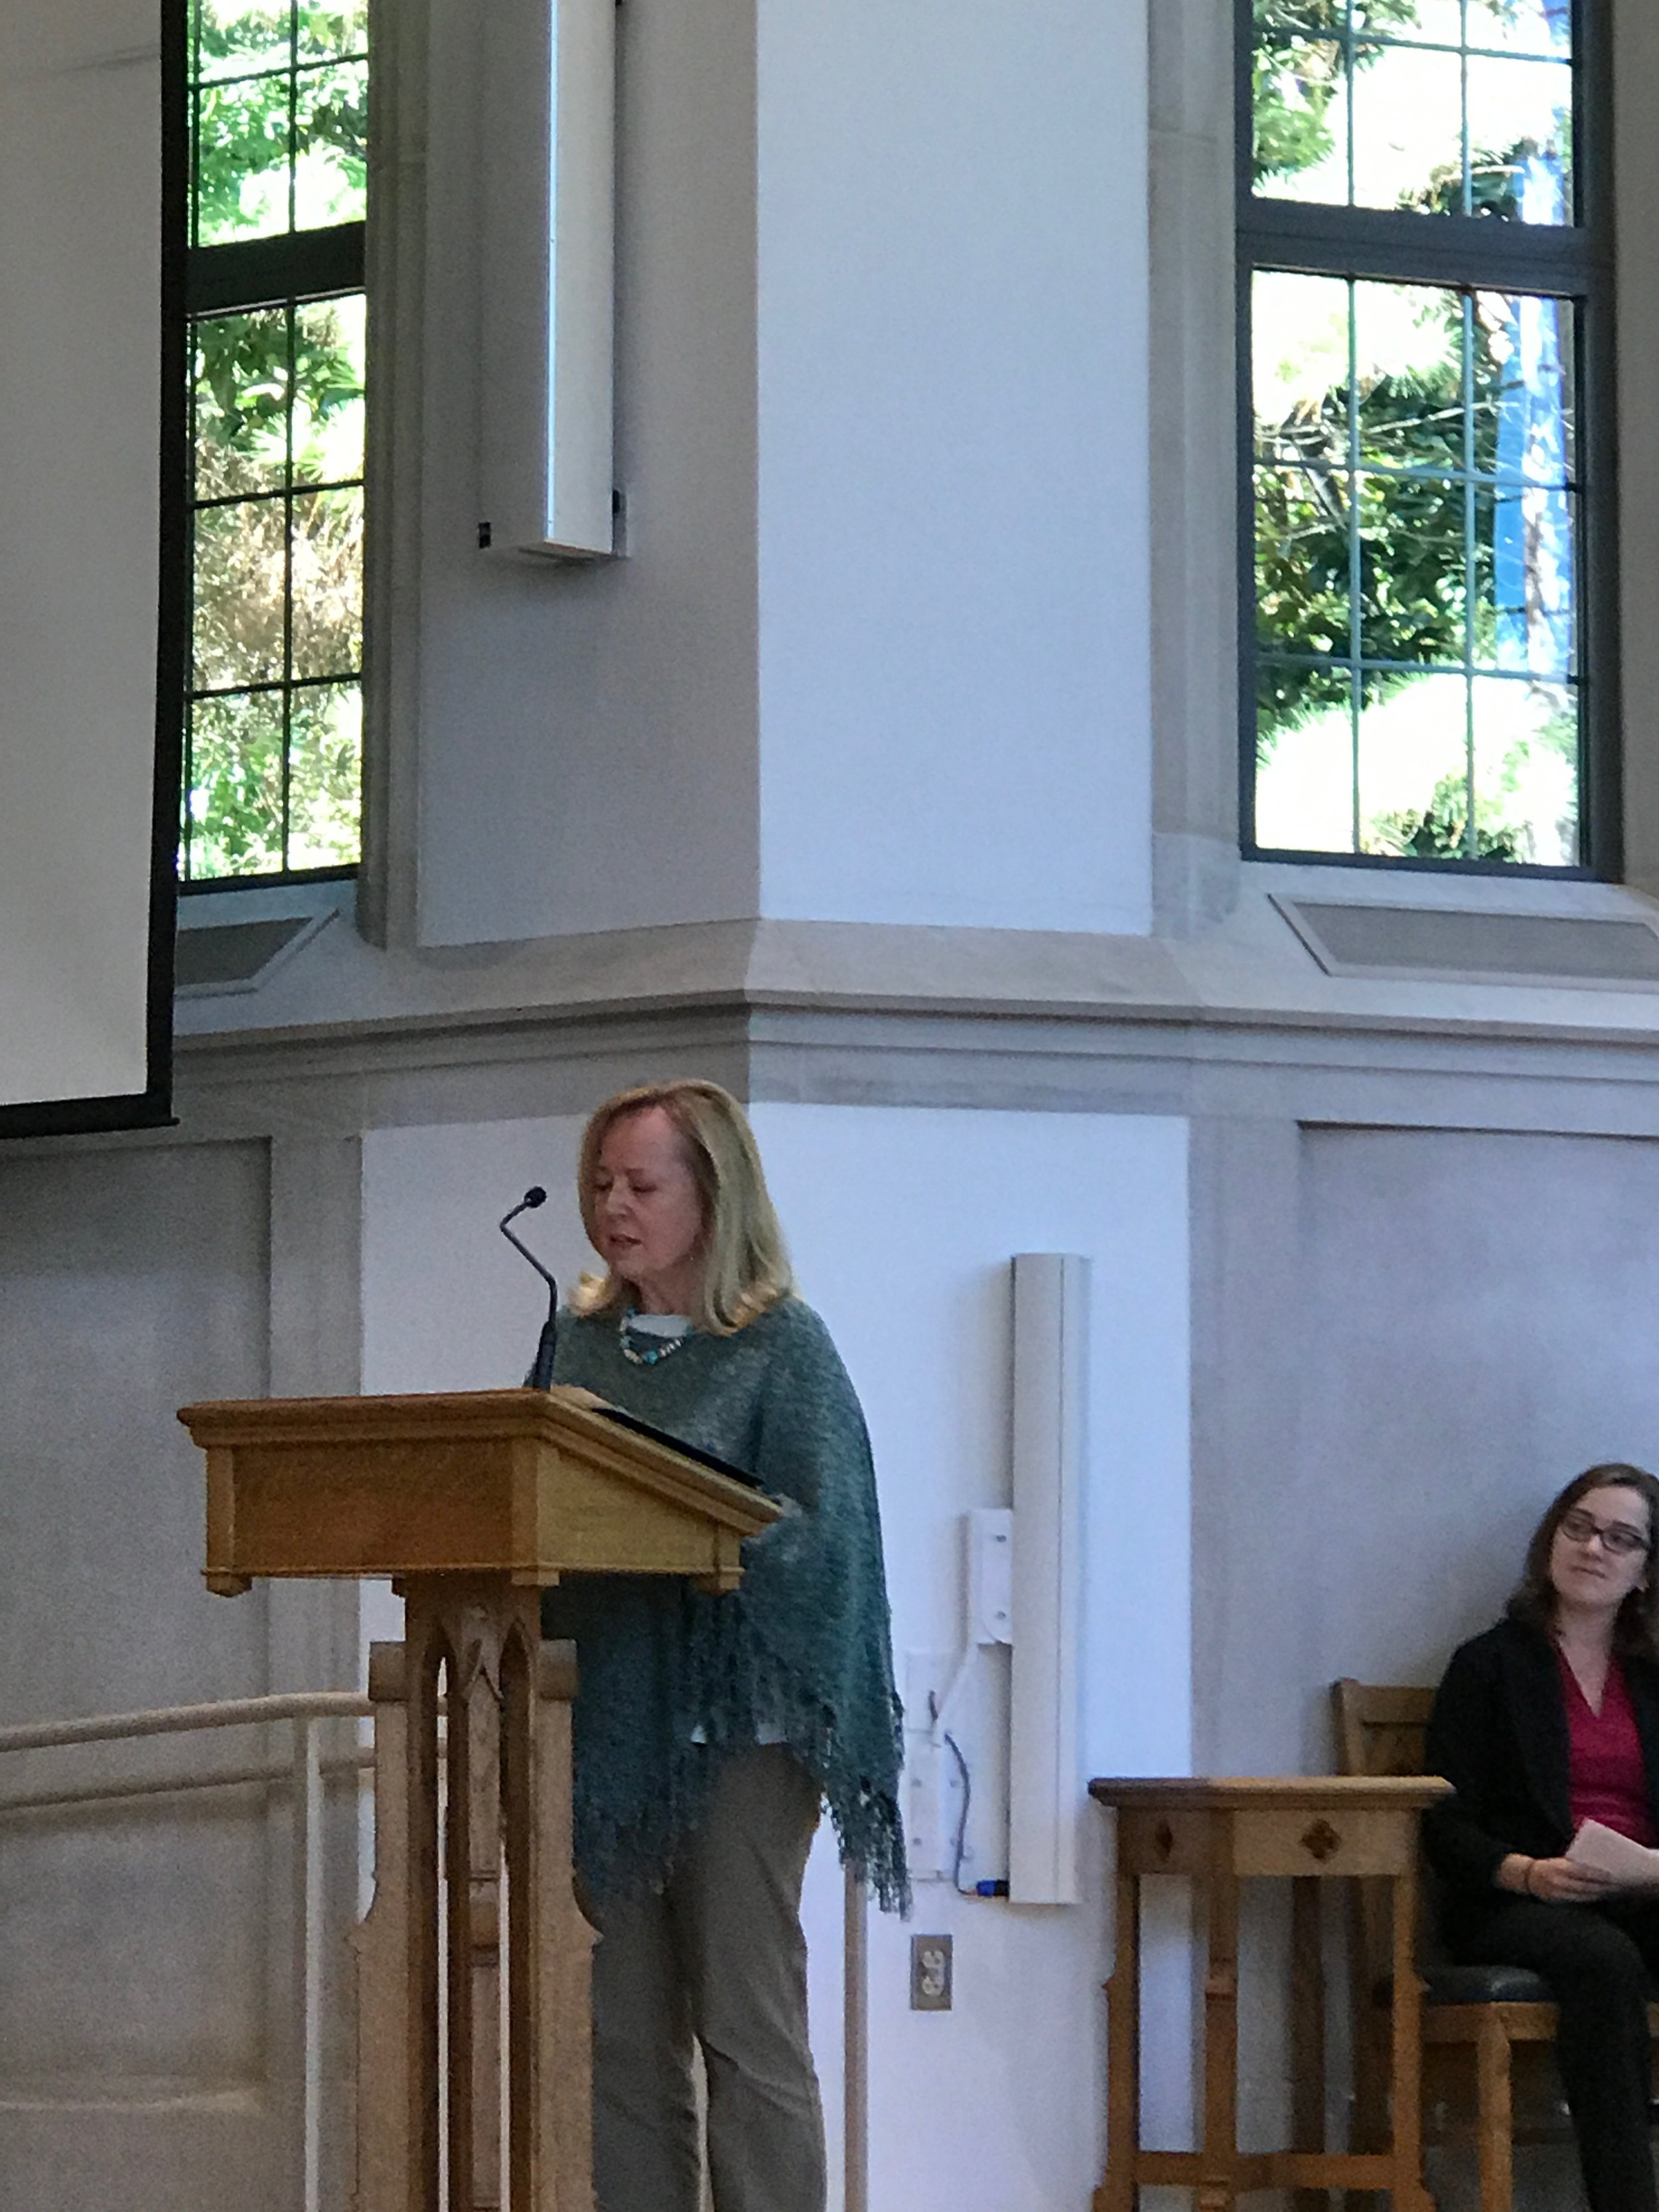 NORTH CAROLINA FILM TOUR 2017    Duke Divinity School Dean Elaine Heath acknowledging the school's racist segregation policies that kept Gil from attending the school in the 1950's.